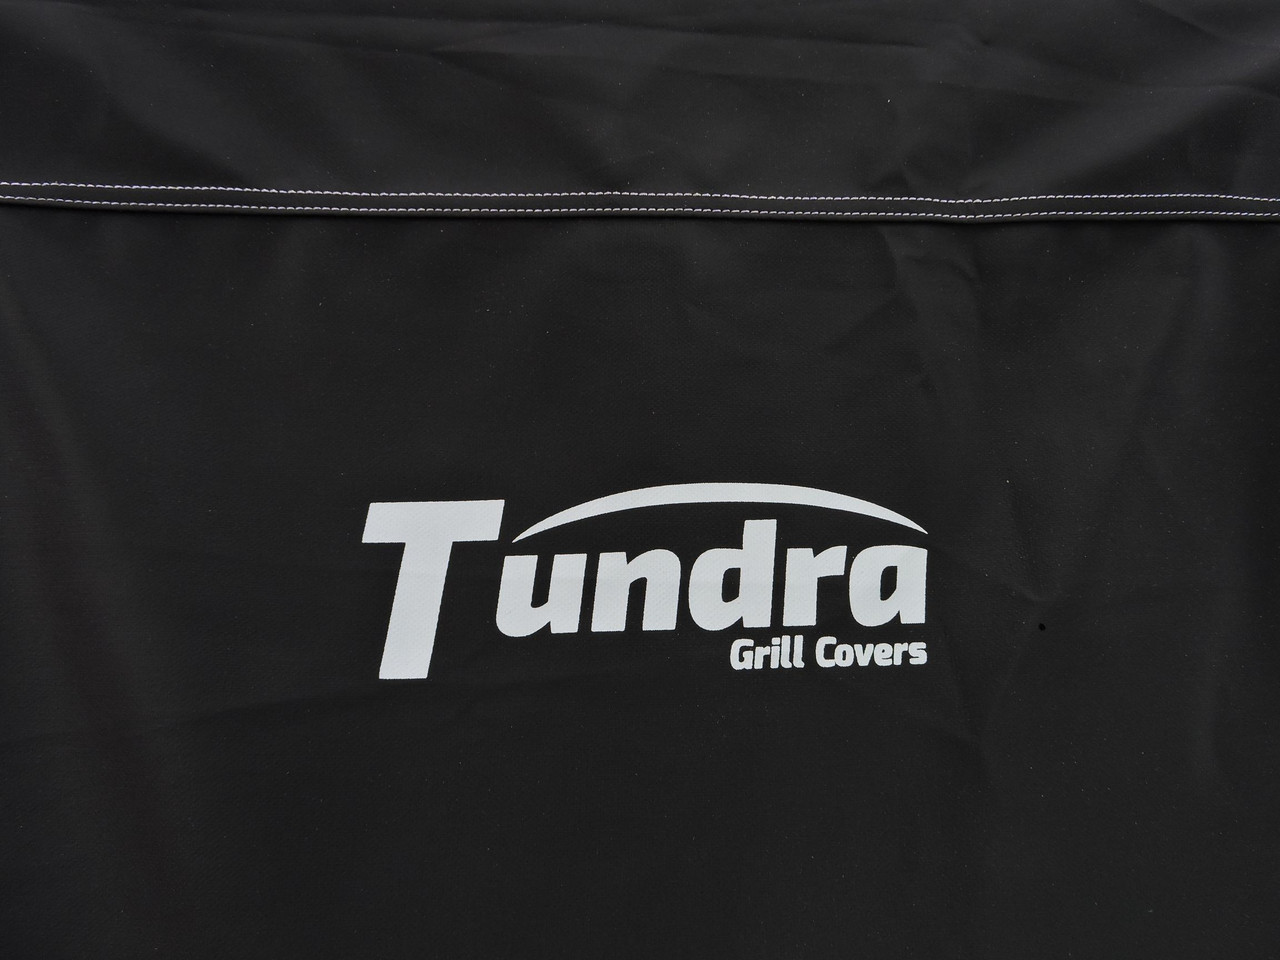 Tundra Supreme Grill Cover; Eye pleasing contrasting stitching